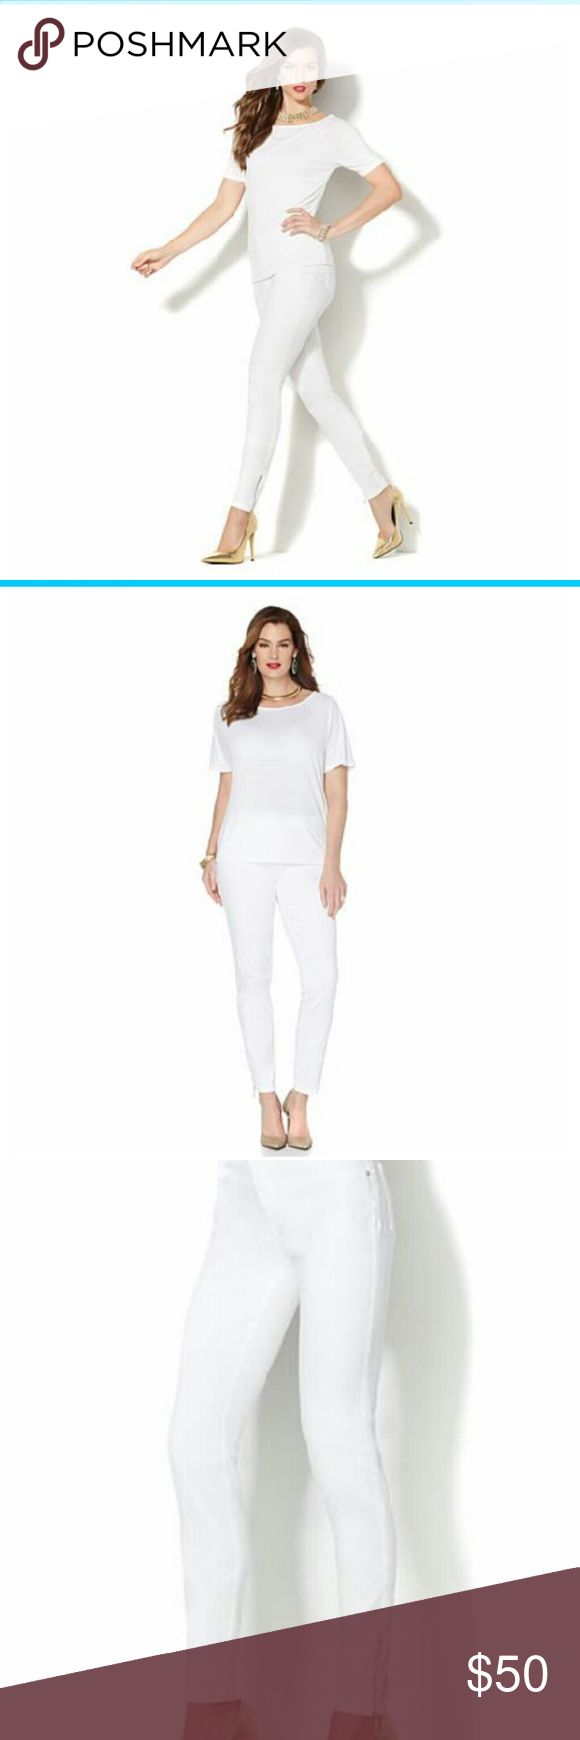 IMAN White Jean Outfit  (T-shirt & Jeans) IMAN White Jean with Ankle Zipper Outfit shirt size L jeans size 14short IMAN Jeans Skinny